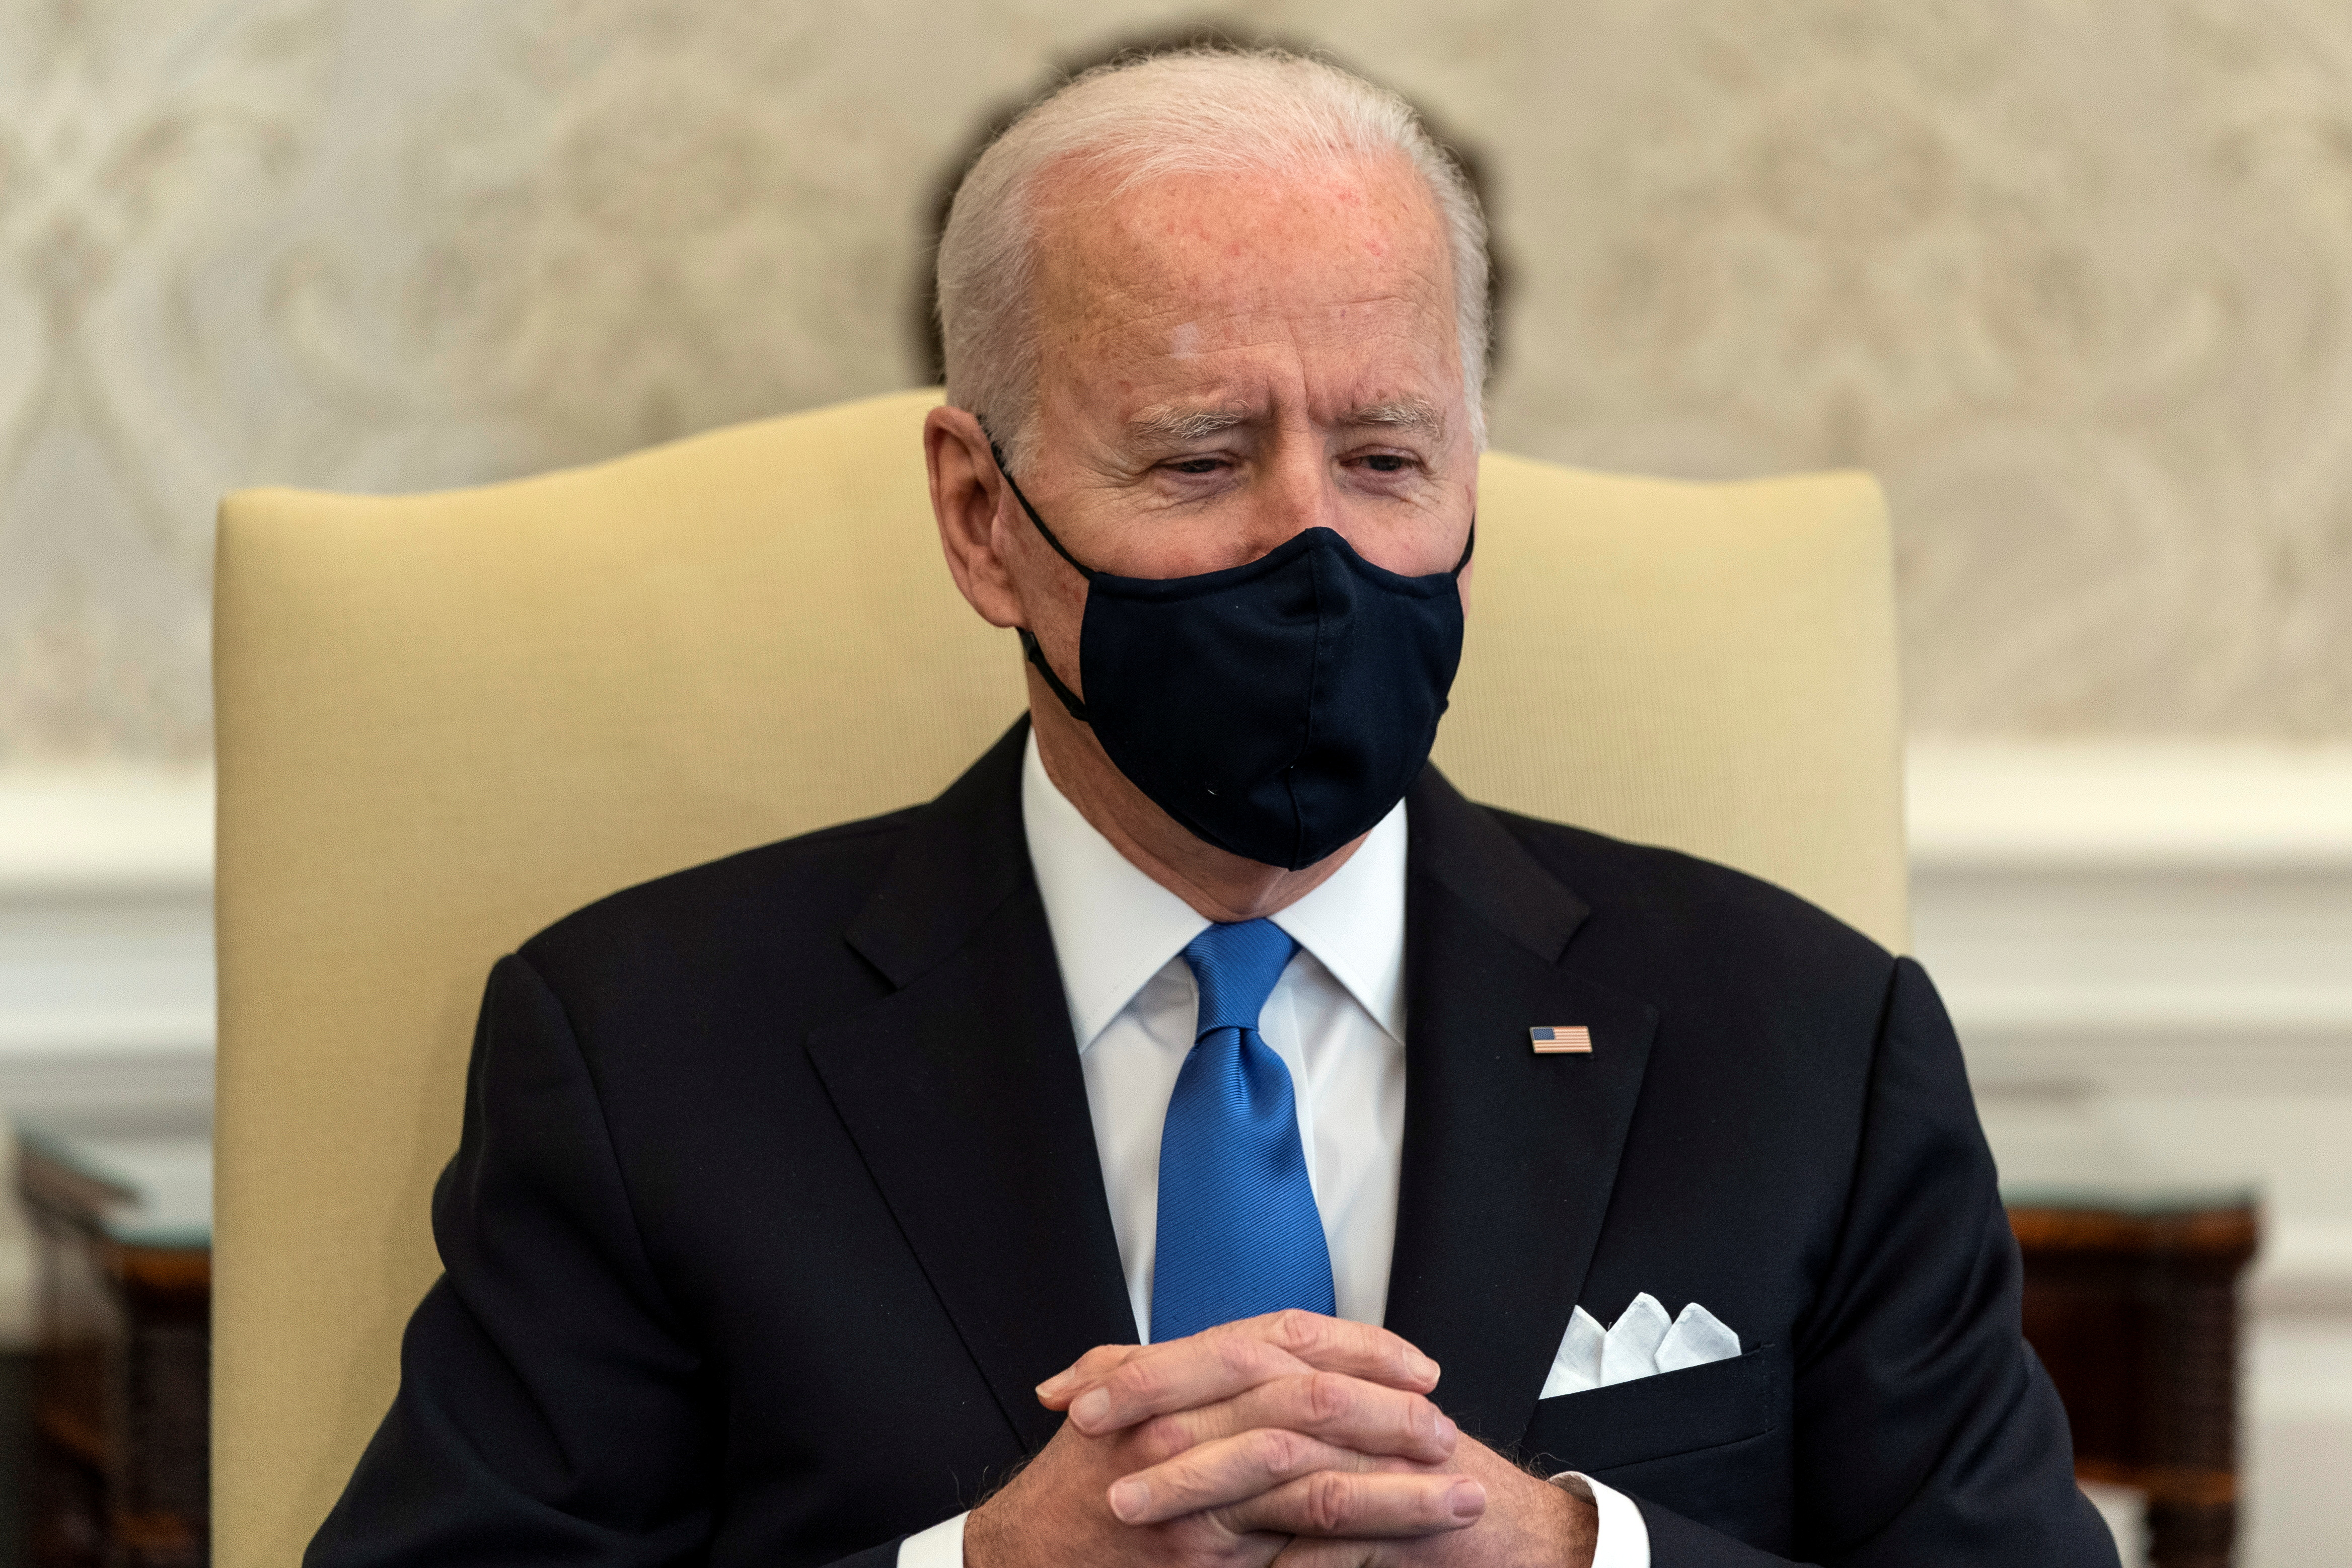 U.S. President Joe Biden attends a bipartisan meeting on cancer legislation in the Oval Office at the White House in Washington, U.S., March 3, 2021. Alex Brandon/Pool via REUTERS